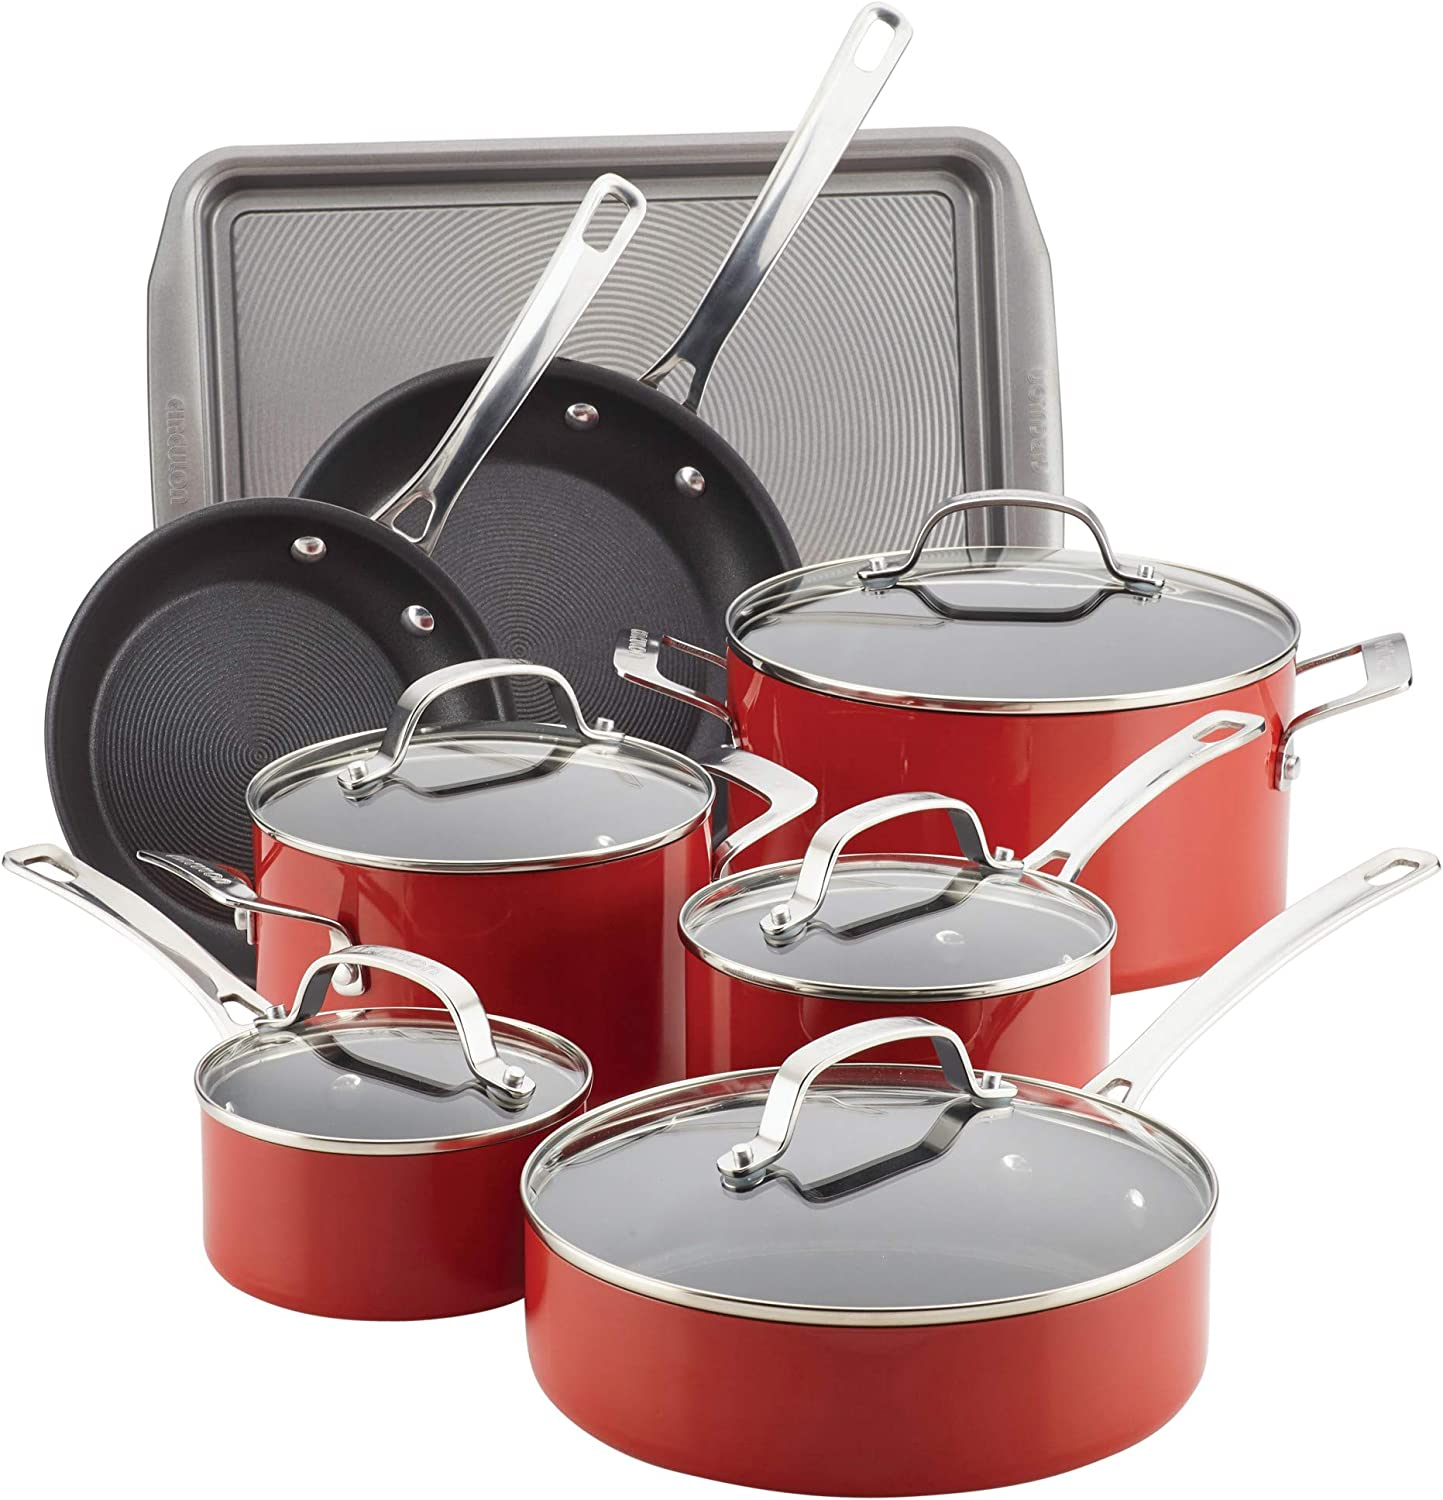 Circulon 14570 Genesis Nonstick Cookware Pots and Pans Set, 13 Piece, Red